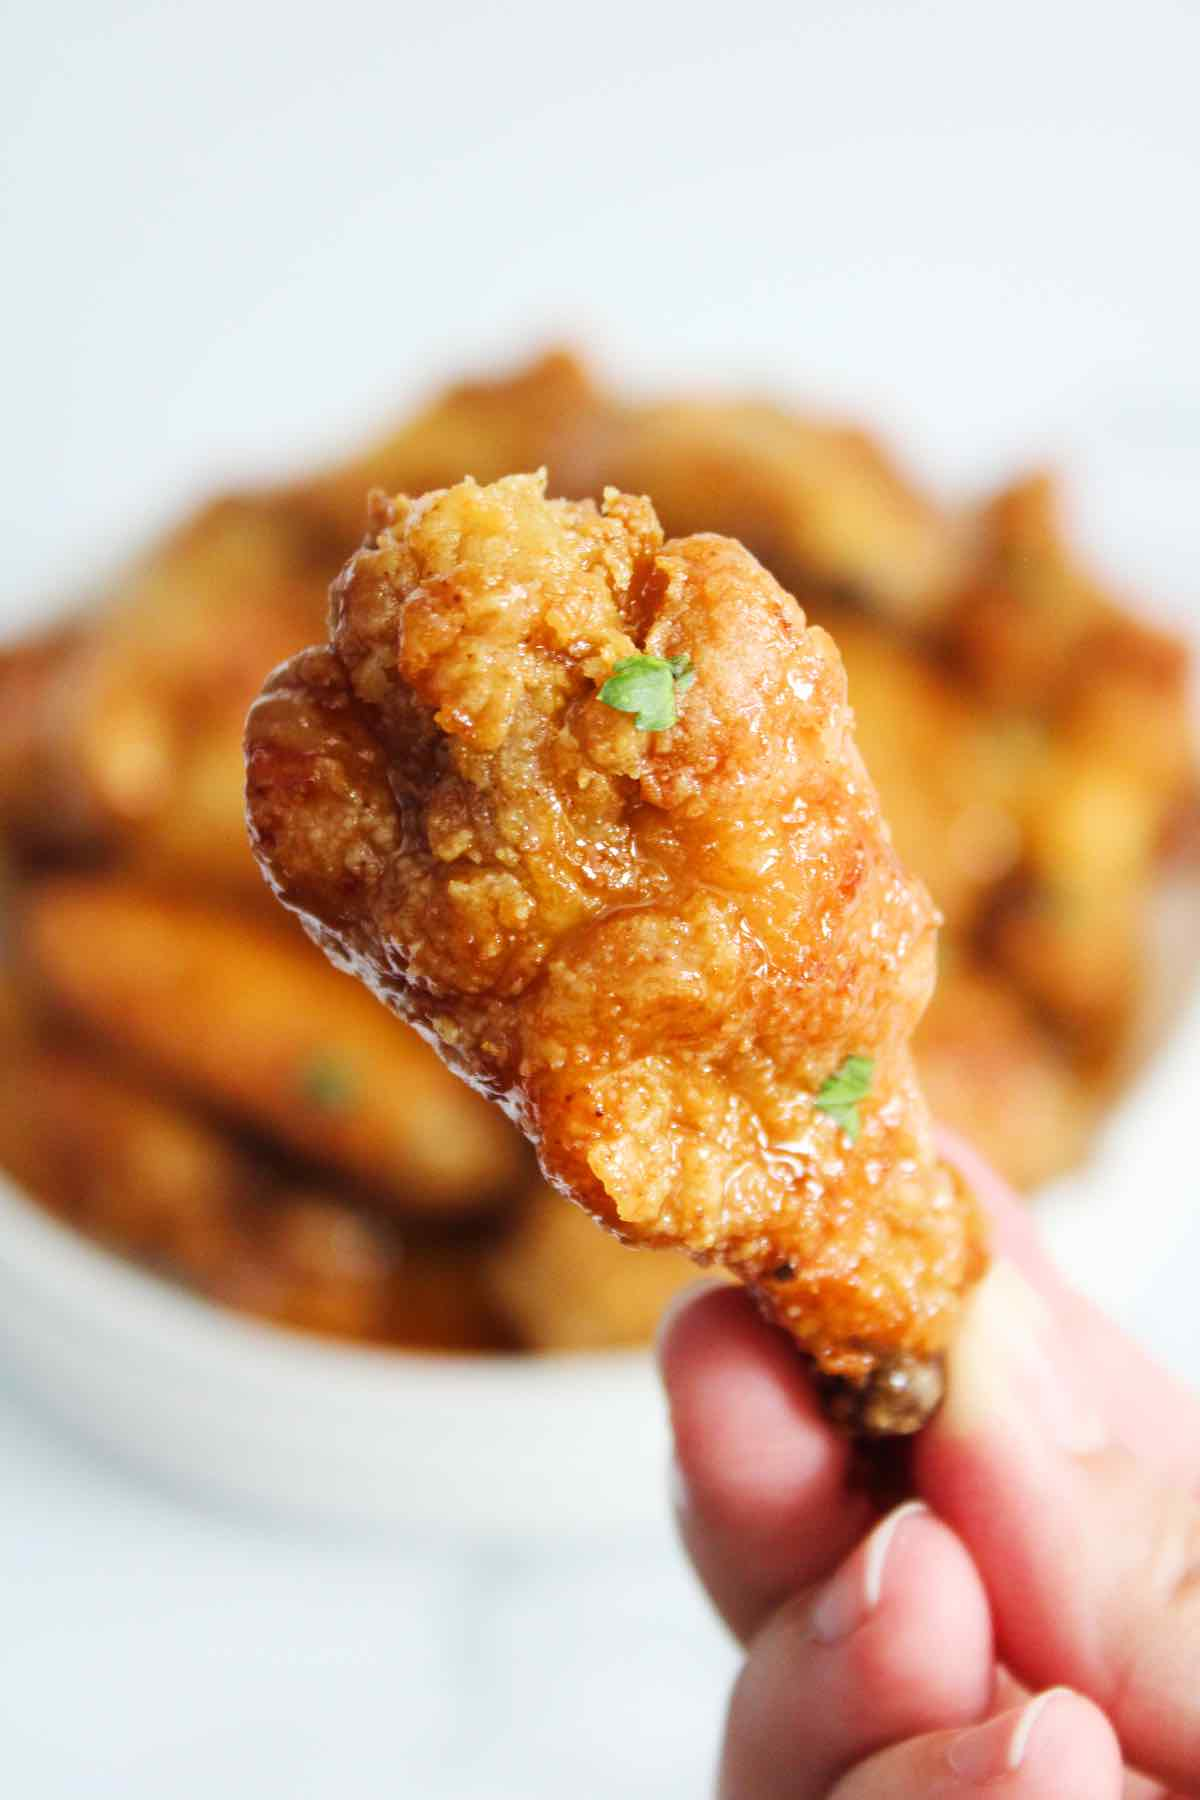 Homemade chicken wings tossed in a honey garlic sauce.